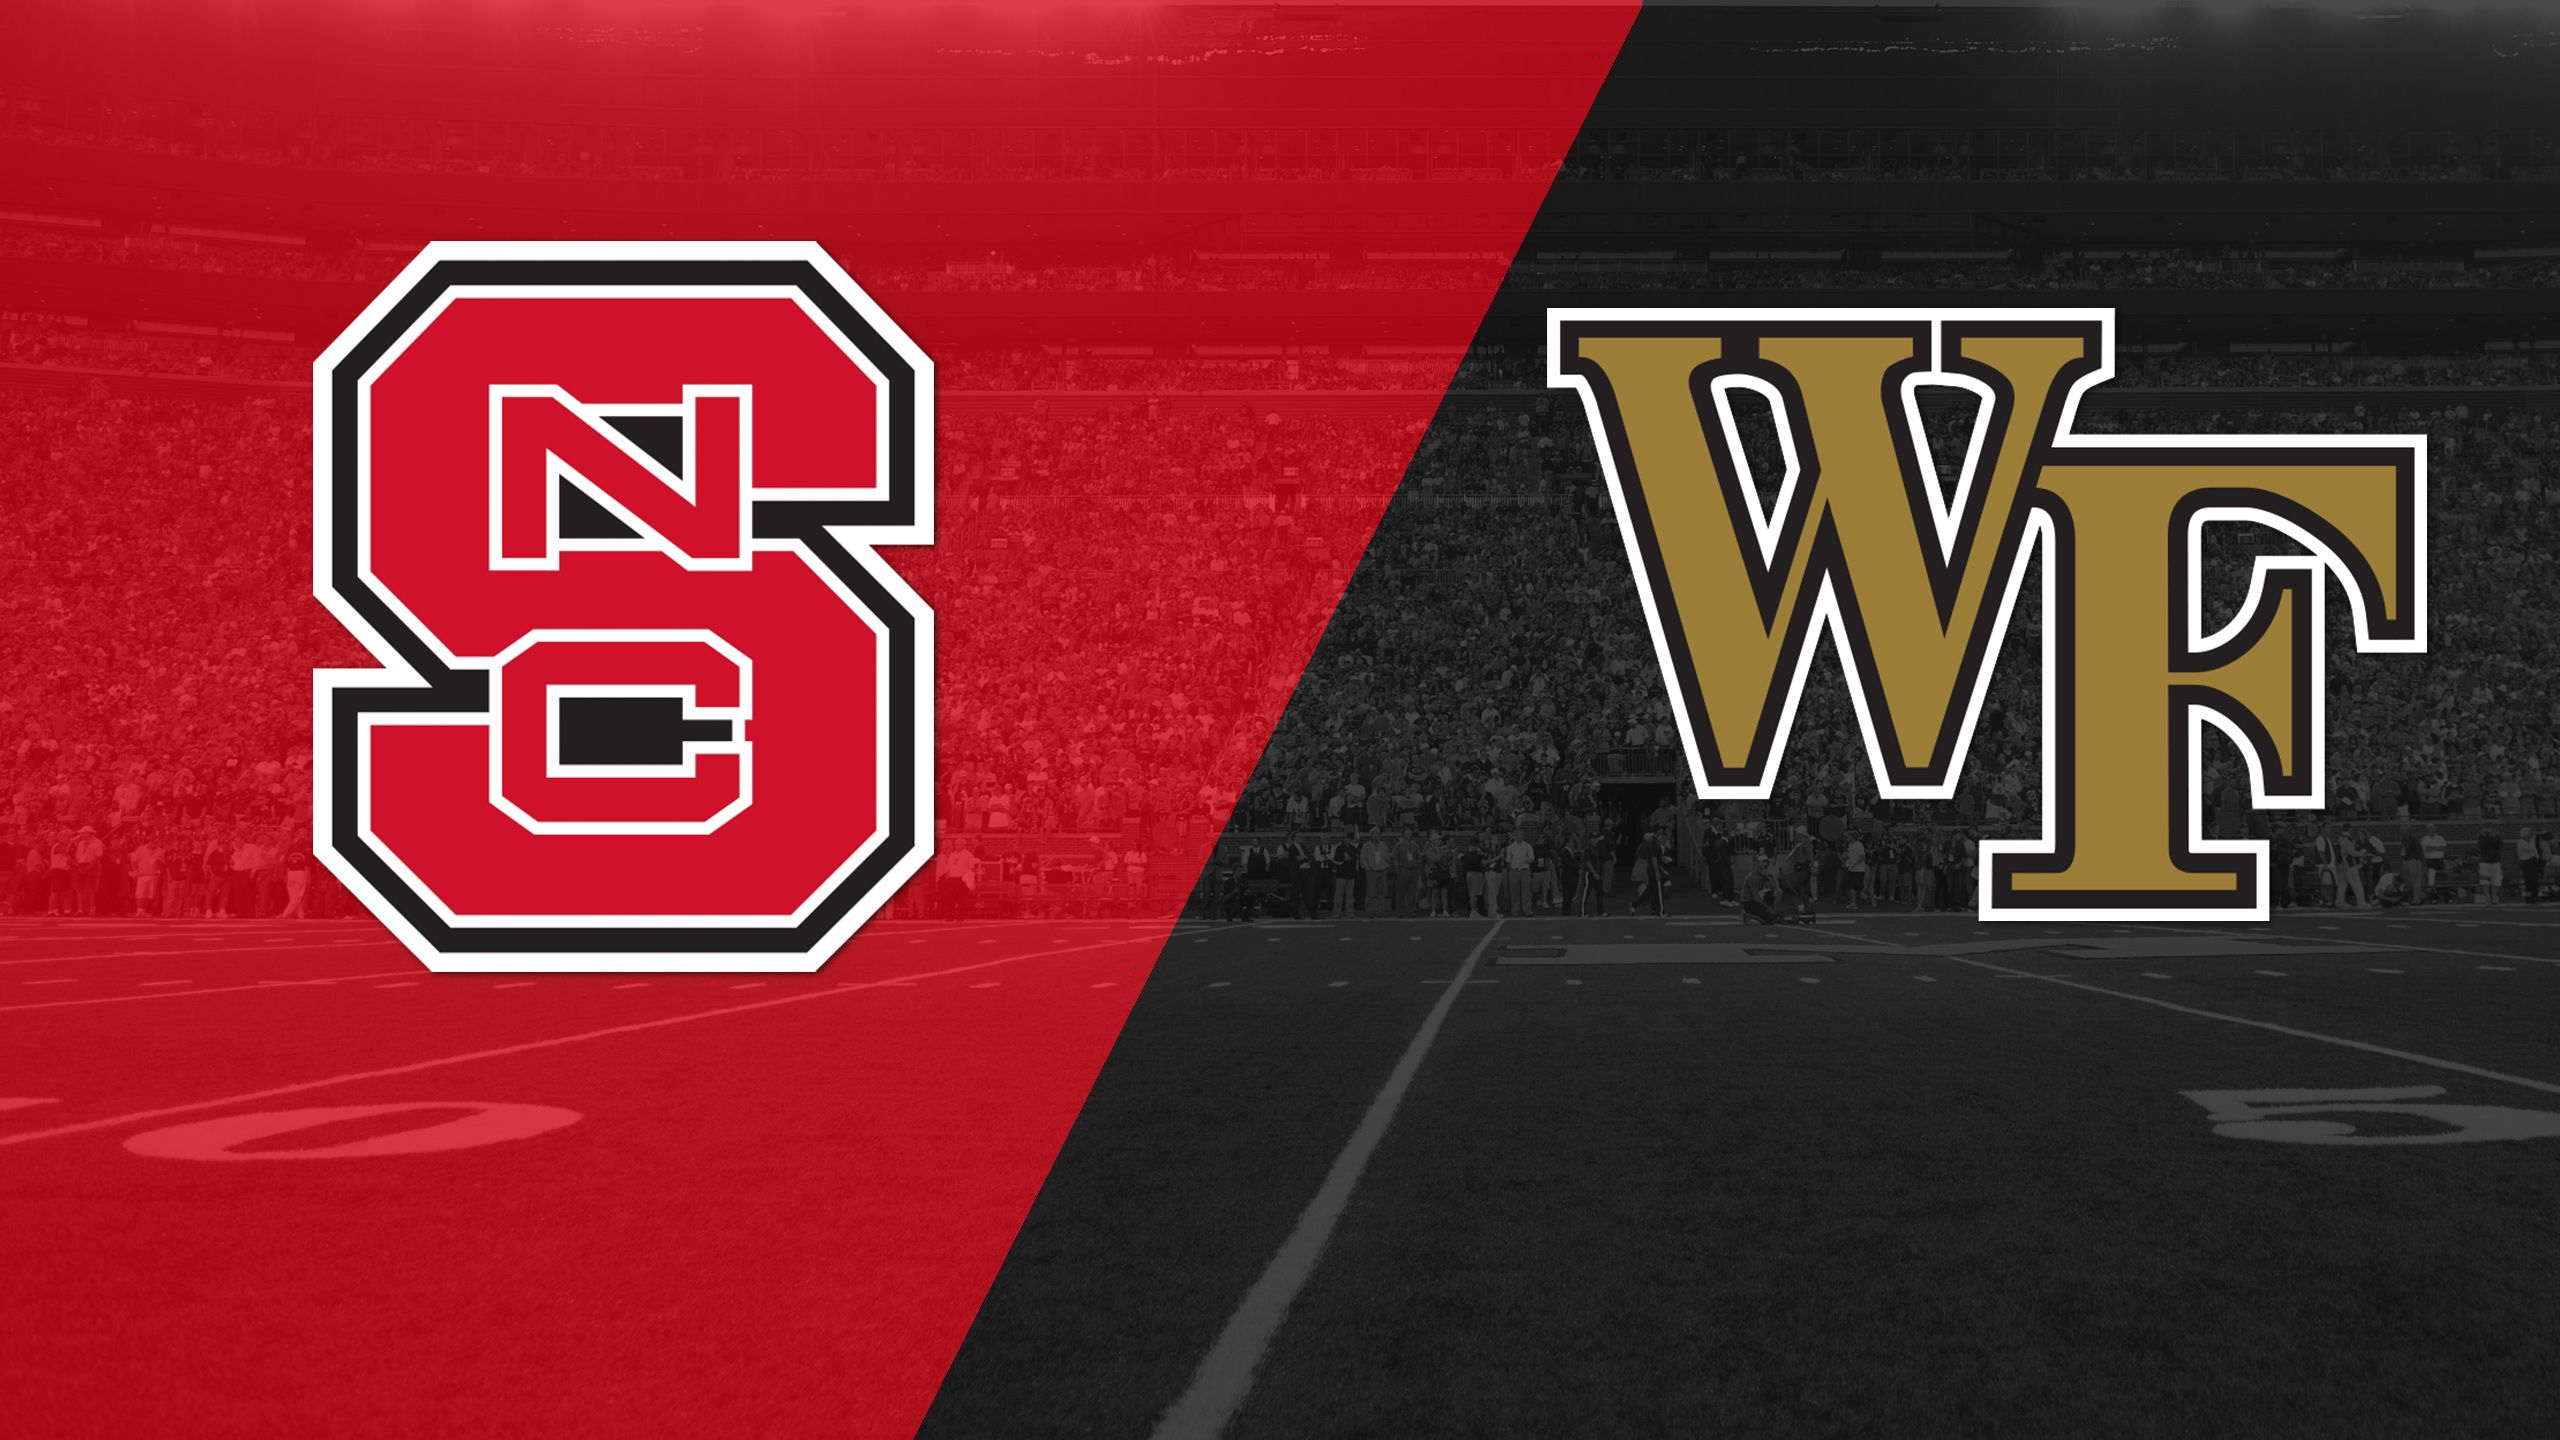 #19 NC State vs. Wake Forest (Football)